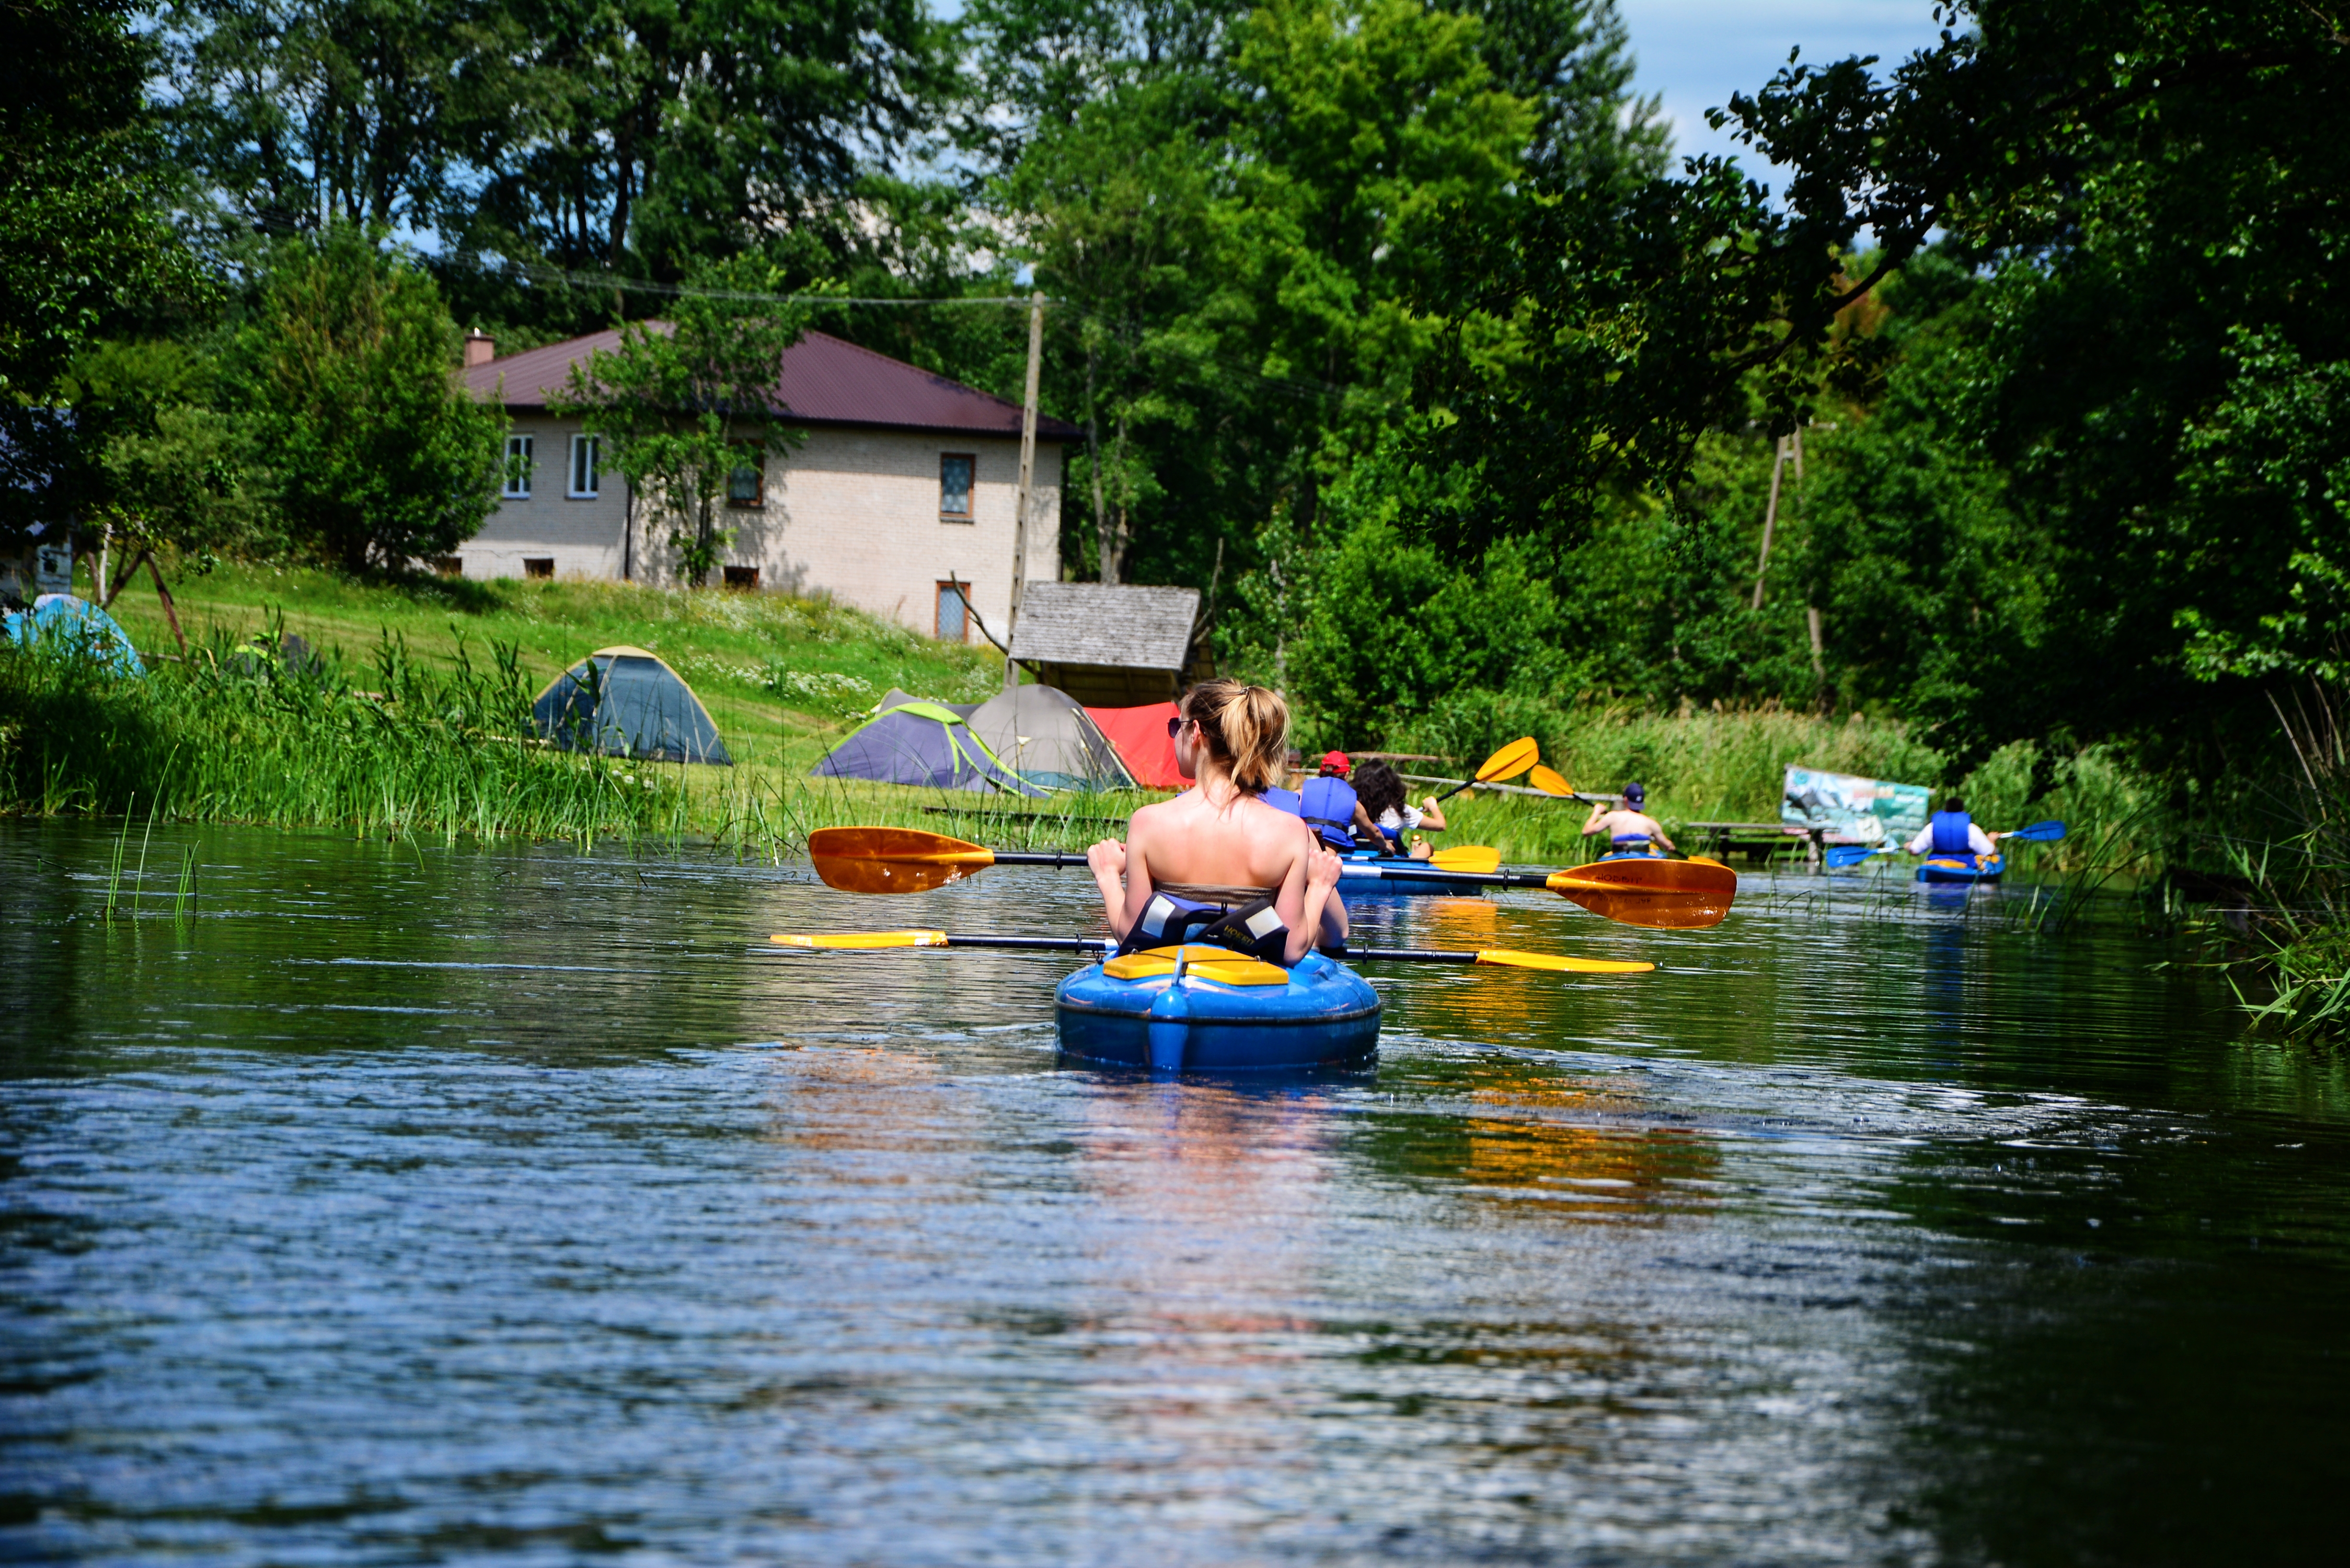 kayaking in poland how much holidays in poland cost